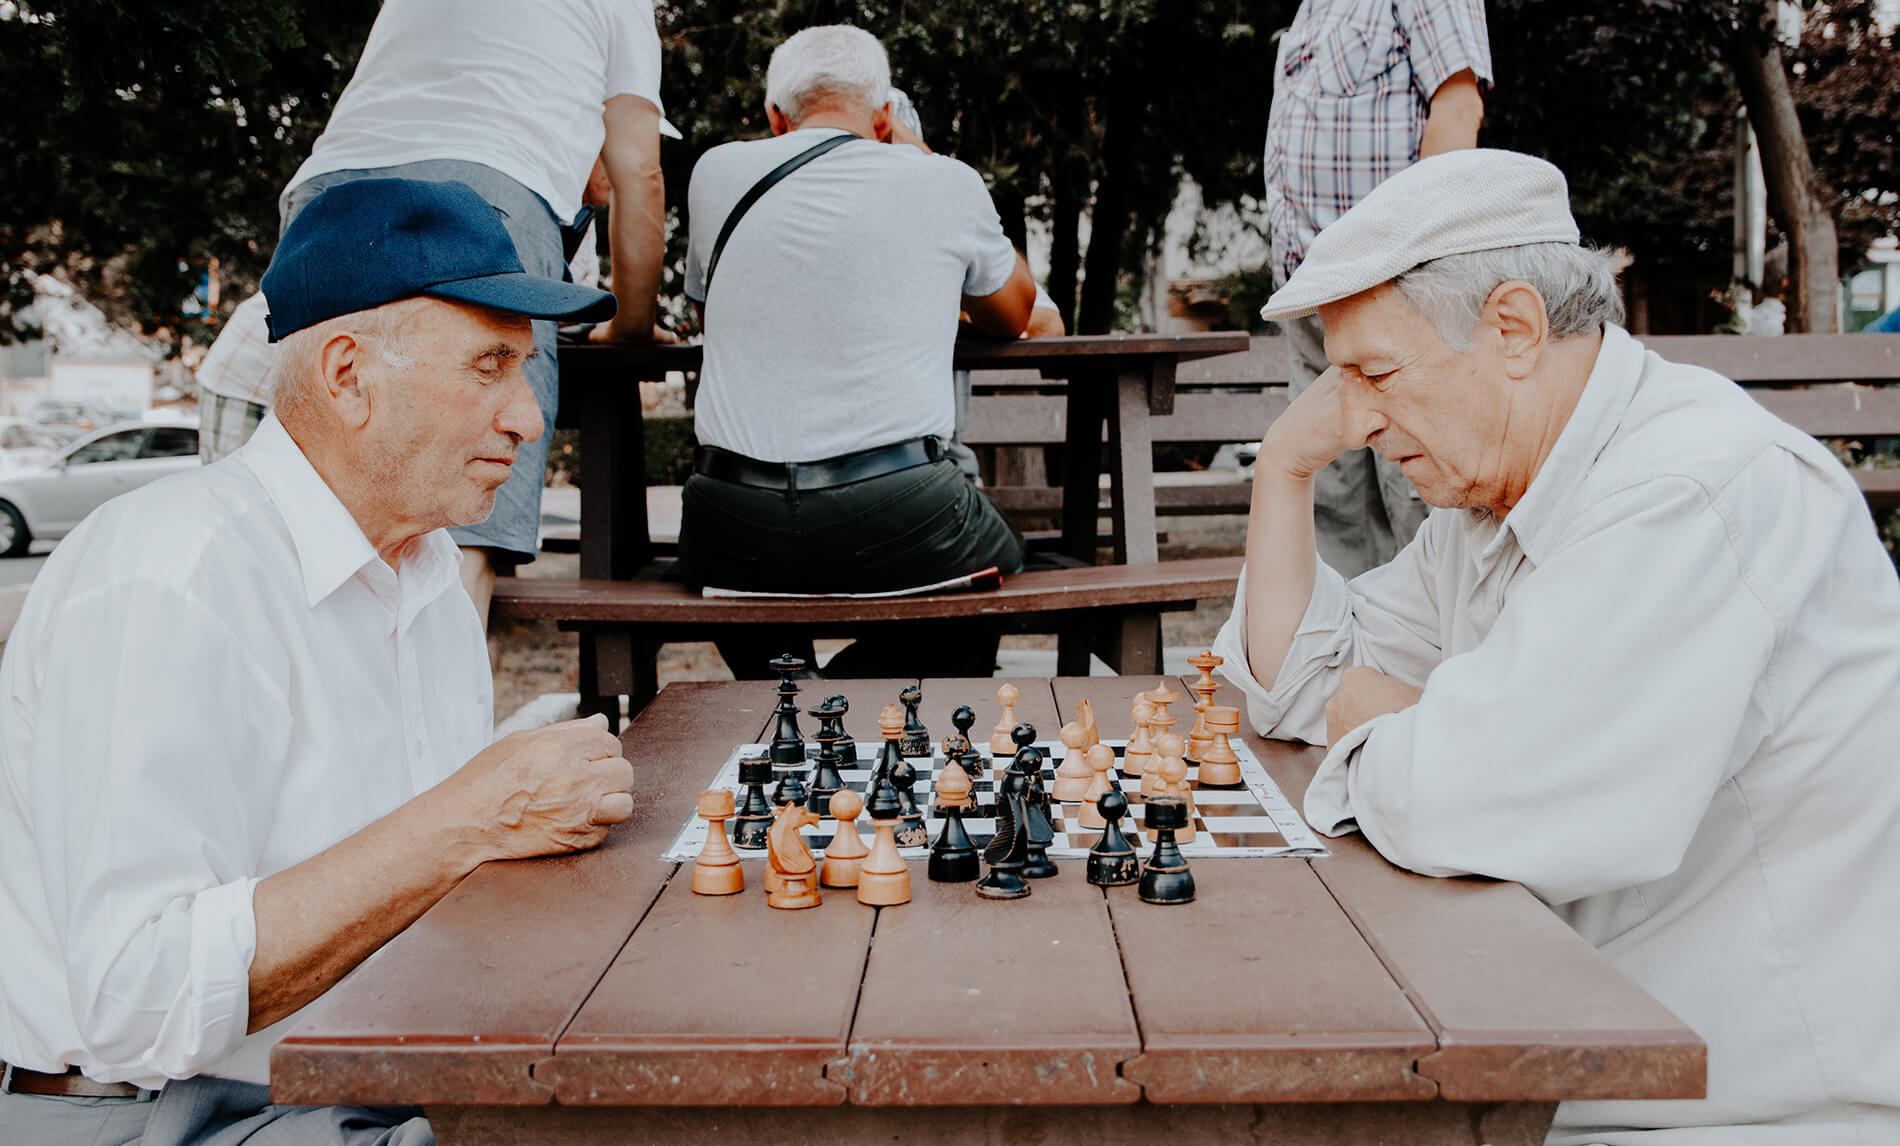 Two senior residents and dementia patients playing chess